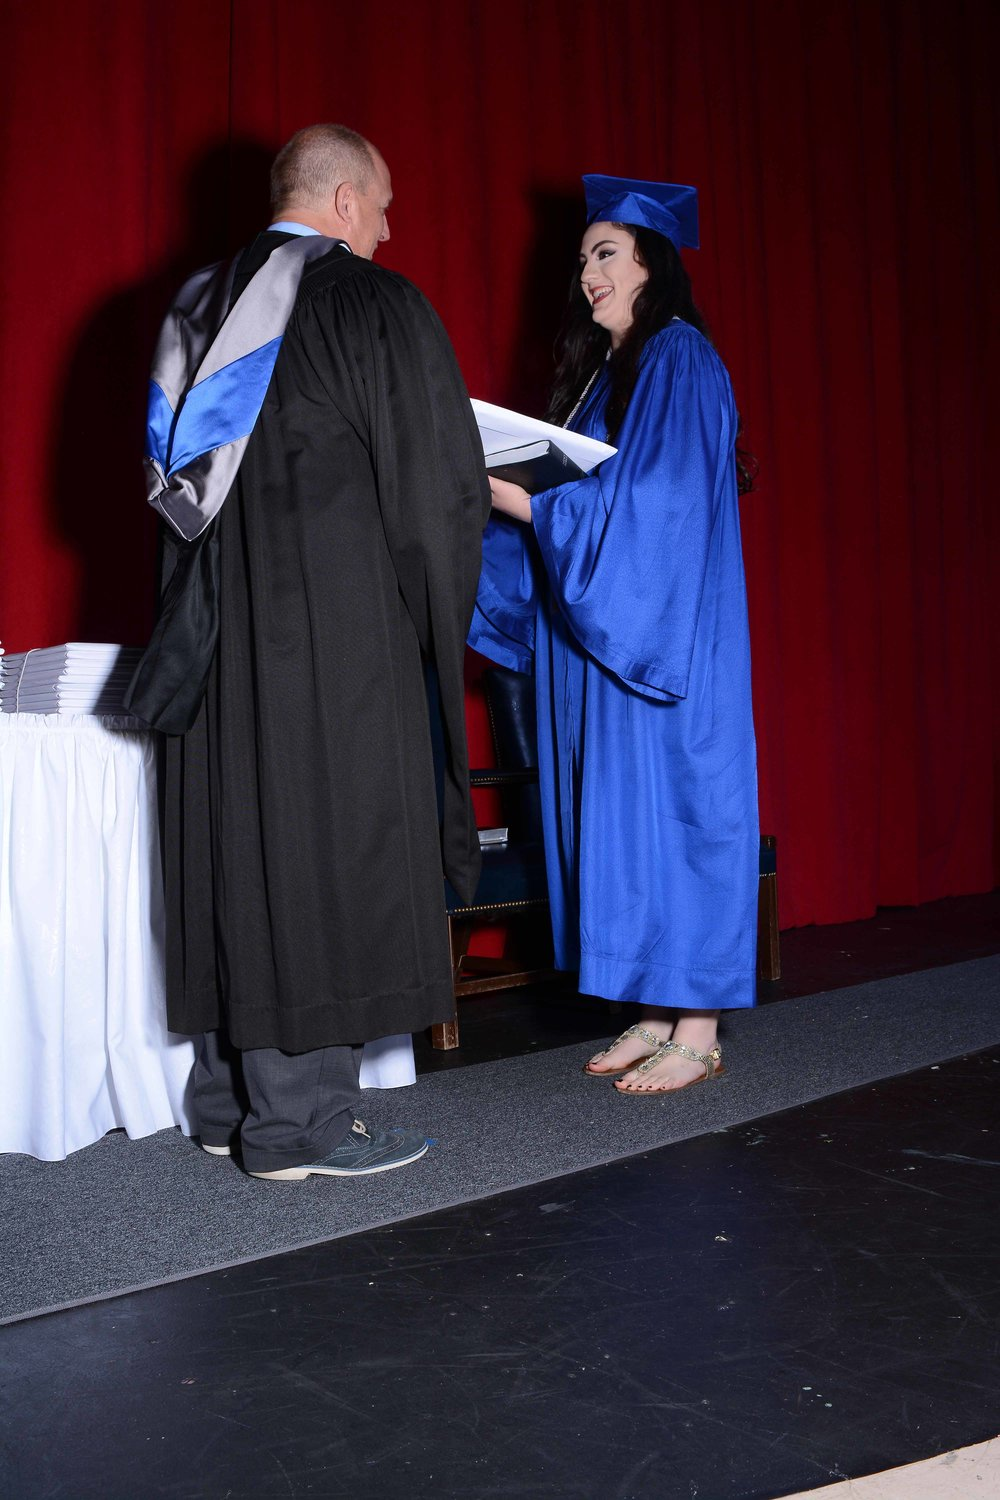 May14 Commencement38.jpg